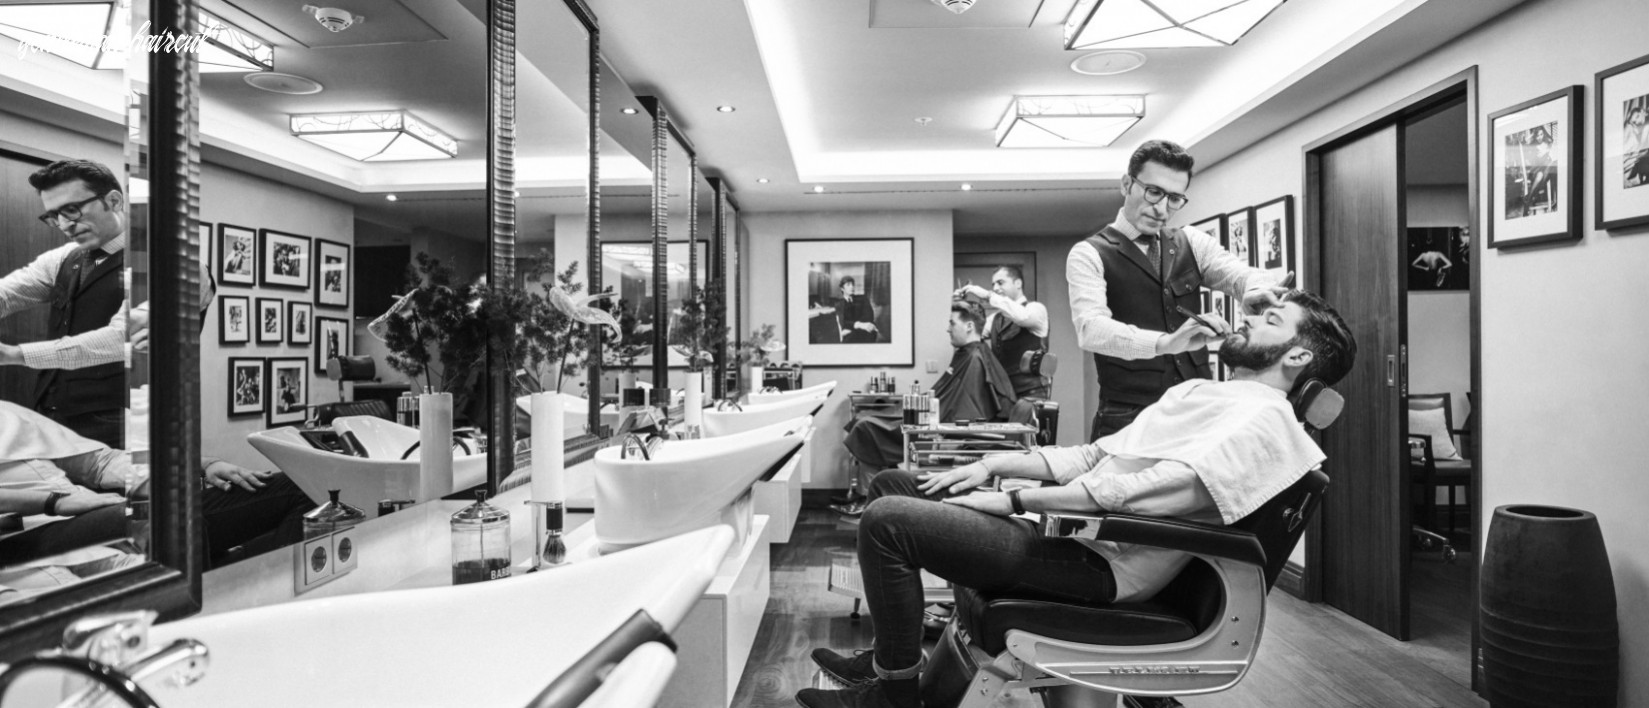 Barber-Shop Frankfurt am Main - THE SPA im Frankfurter Hof